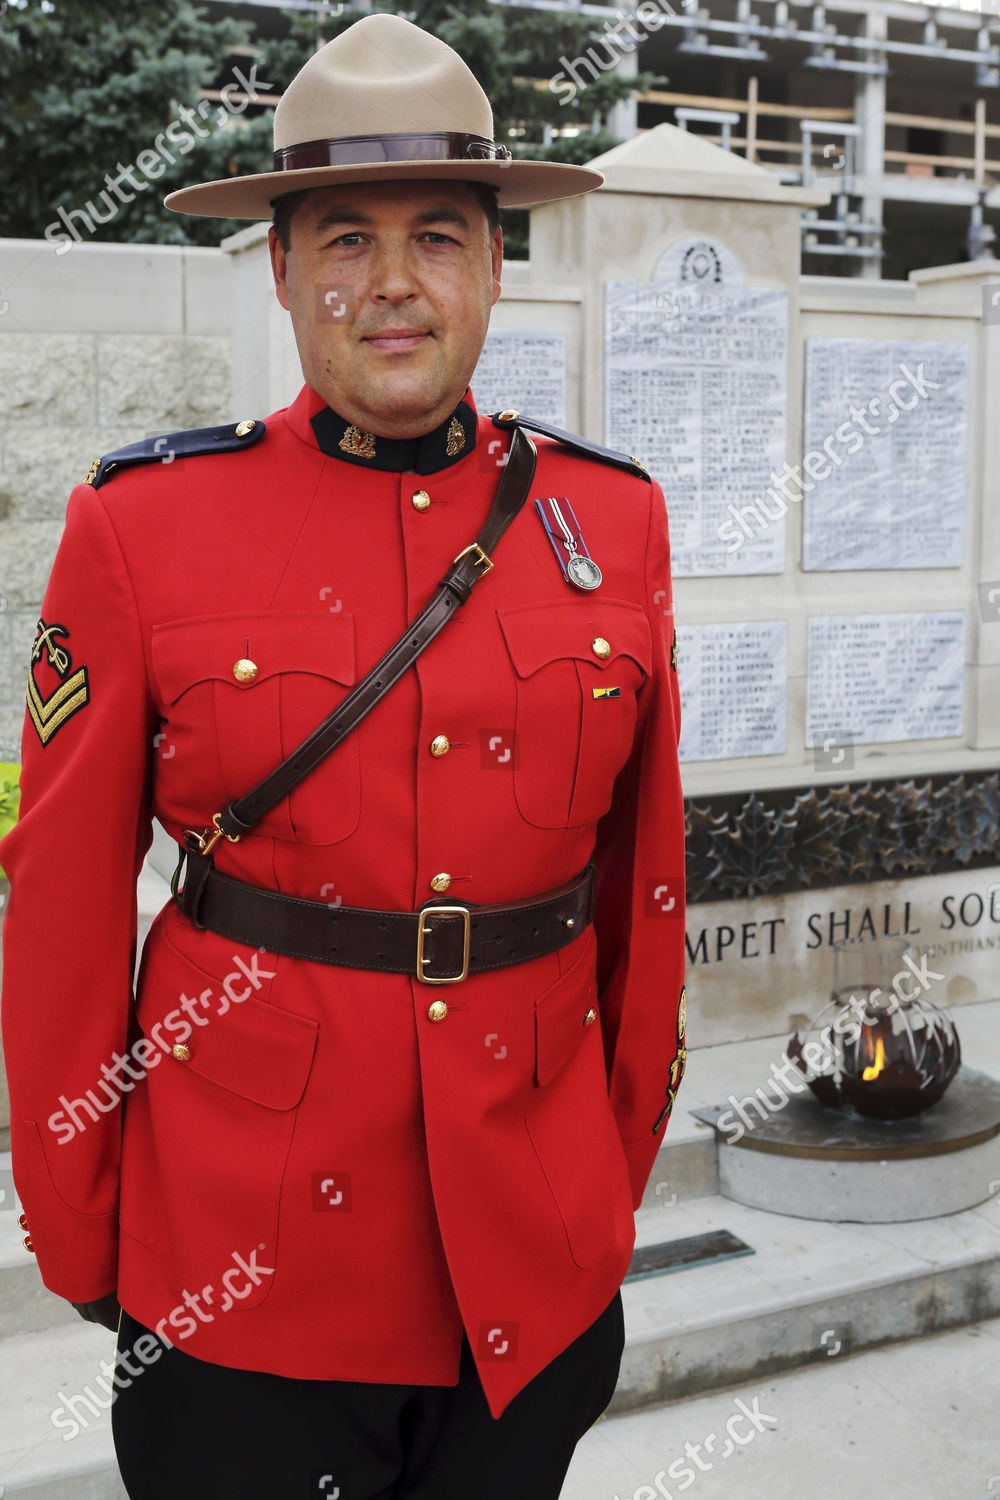 royal-canadian-mounted-police-depot-at-regina-canada-jul-2014-shutterstock-editorial-4048895ae.jpg